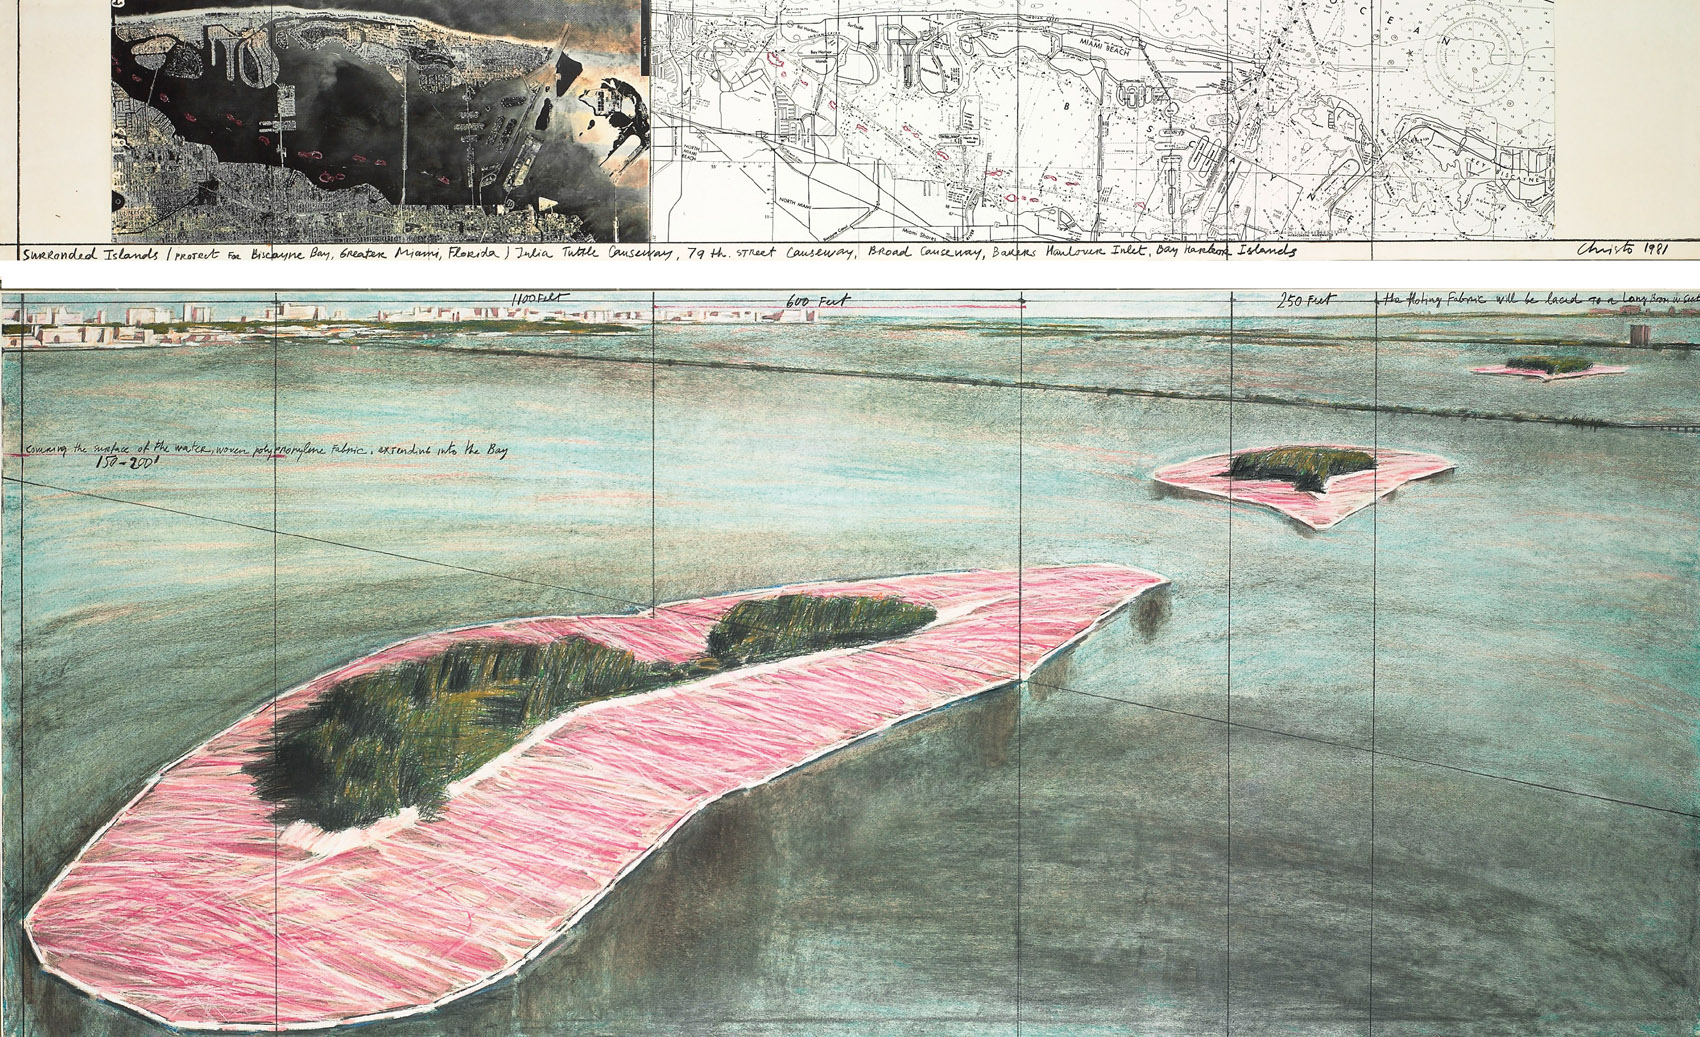 Surrounded Islands (Project for Biscayne Bay, Greater Miami, Florida)